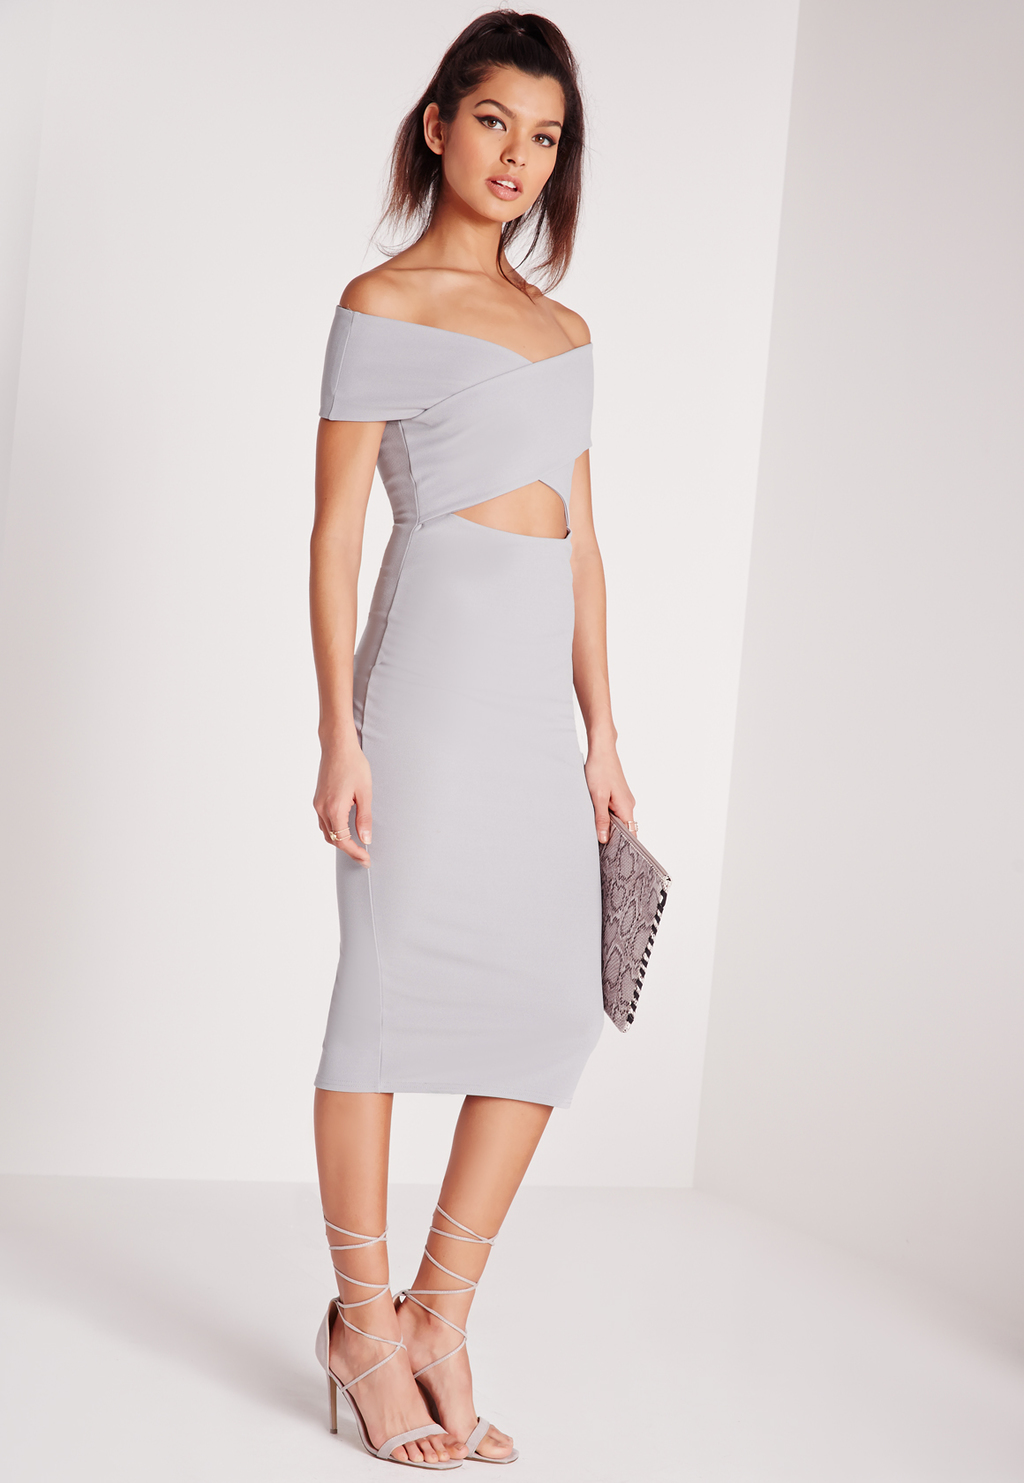 Cut Out Bardot Midi Dress Grey, Ice Grey - length: below the knee; neckline: off the shoulder; fit: tight; pattern: plain; style: bodycon; predominant colour: light grey; occasions: evening; fibres: viscose/rayon - stretch; waist detail: cut out detail; sleeve length: short sleeve; sleeve style: standard; texture group: jersey - clingy; pattern type: fabric; season: s/s 2016